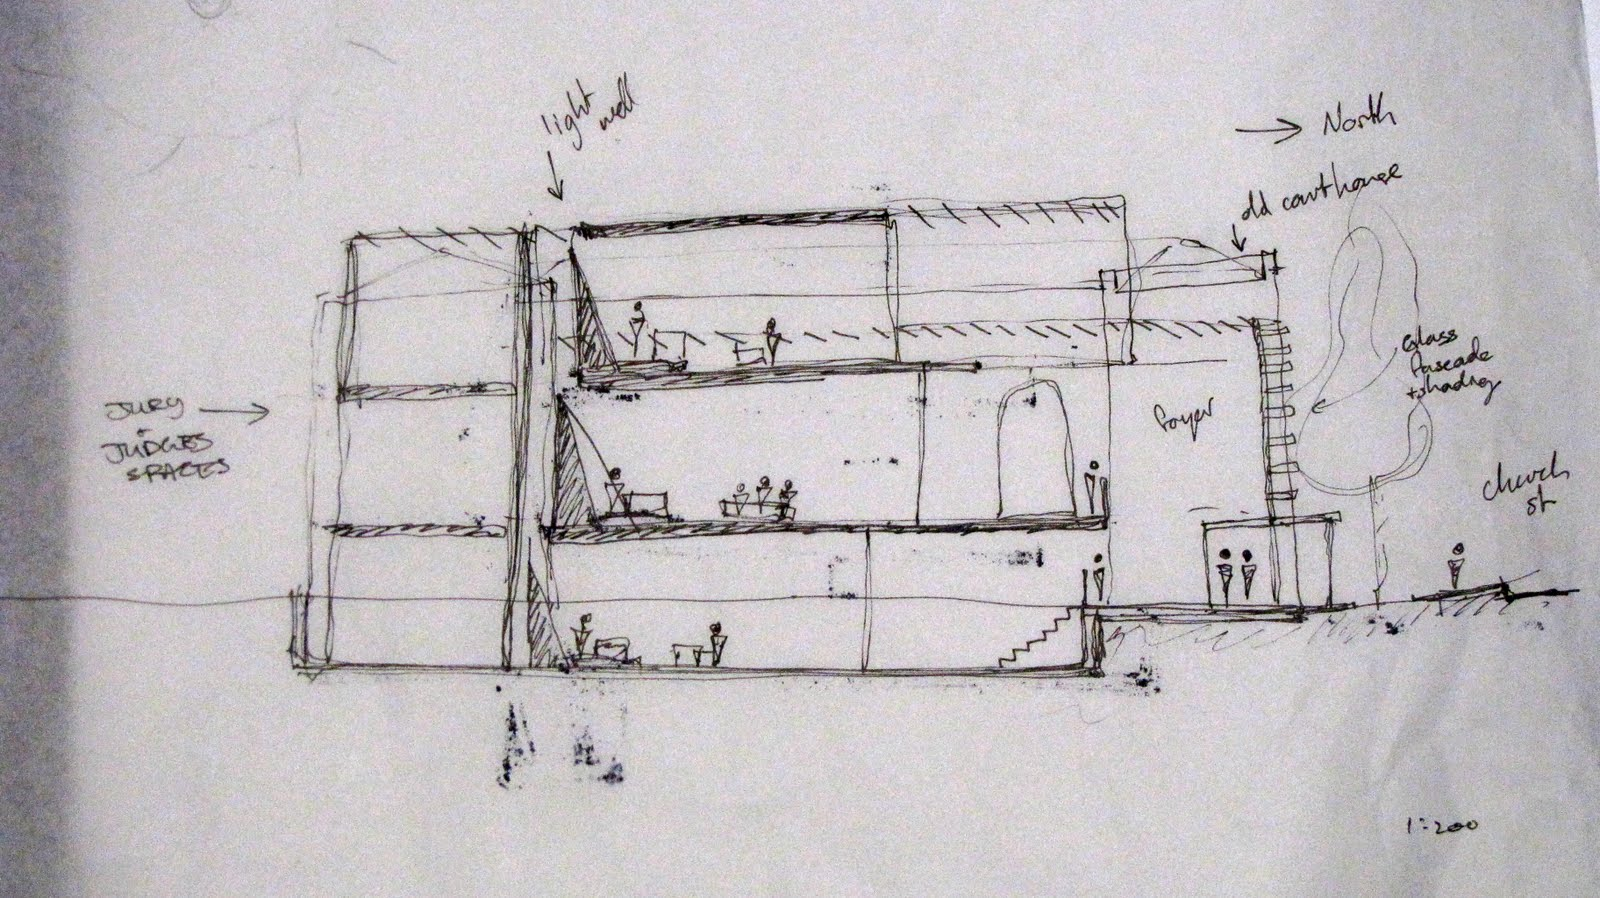 Newcastle Court House: Schematic Sketches